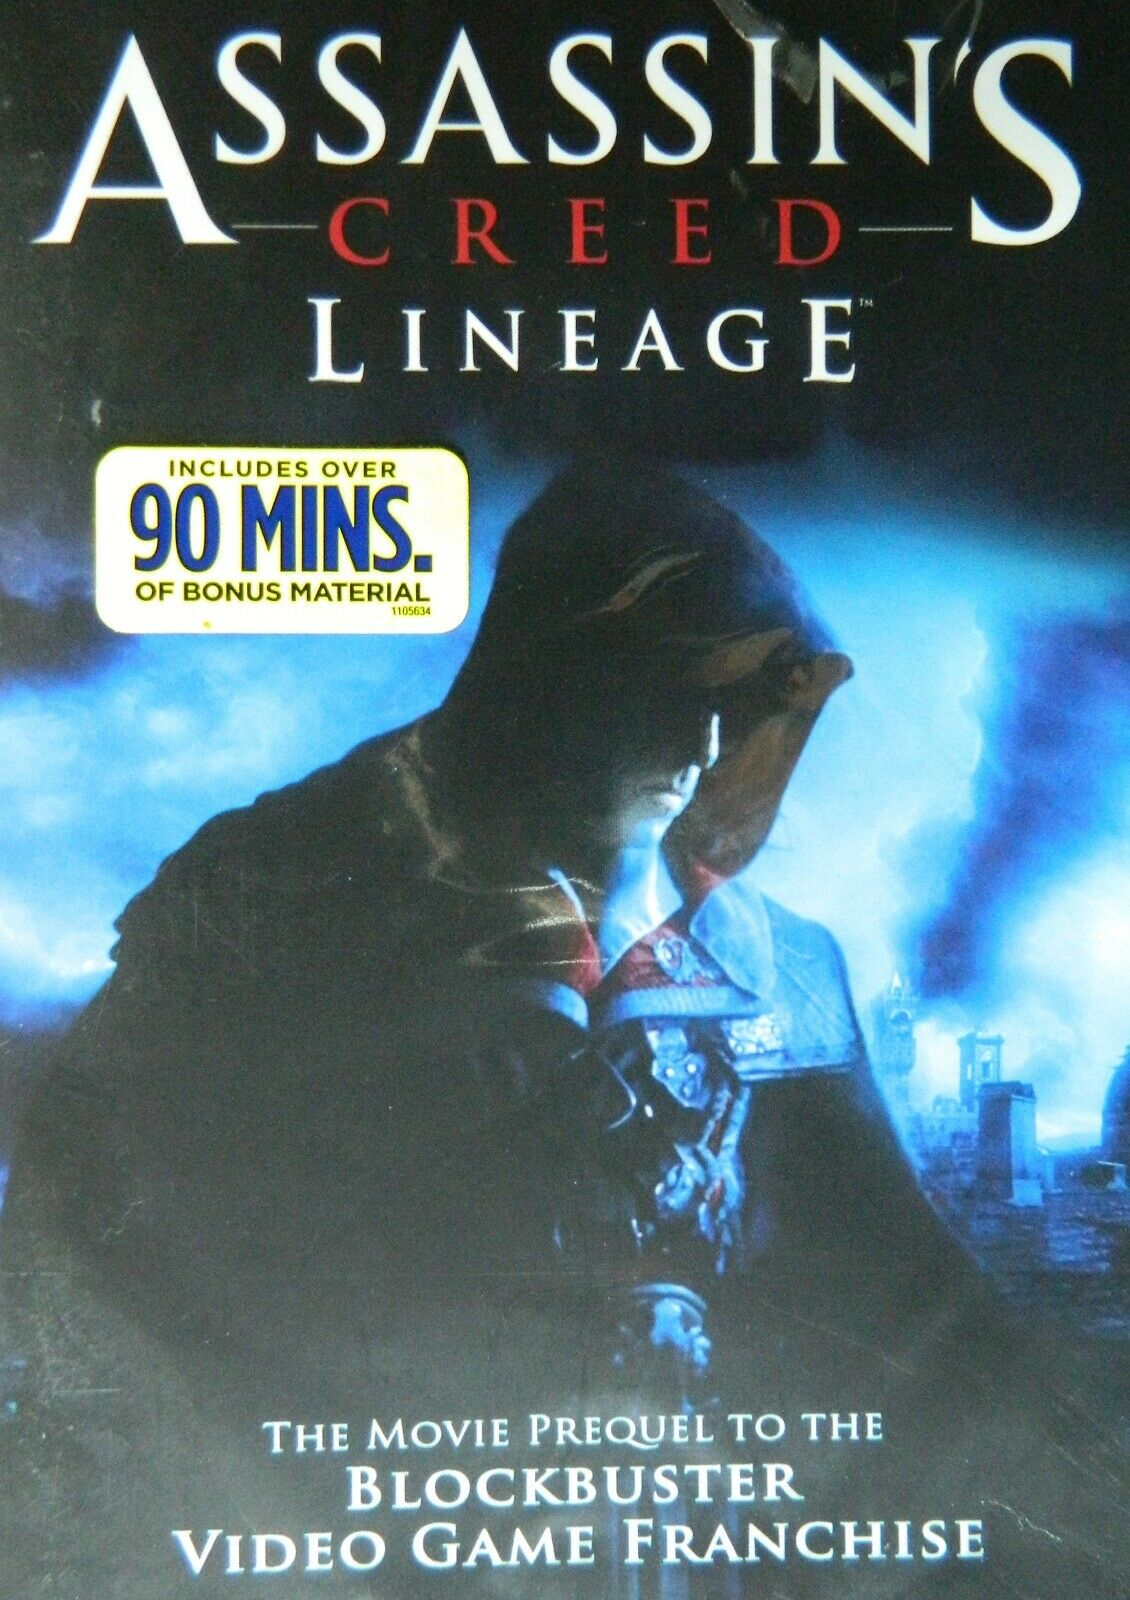 Assassin S Creed Lineage 2009 Prequel To Game 90 Minutes Of Bonus Material Ebay